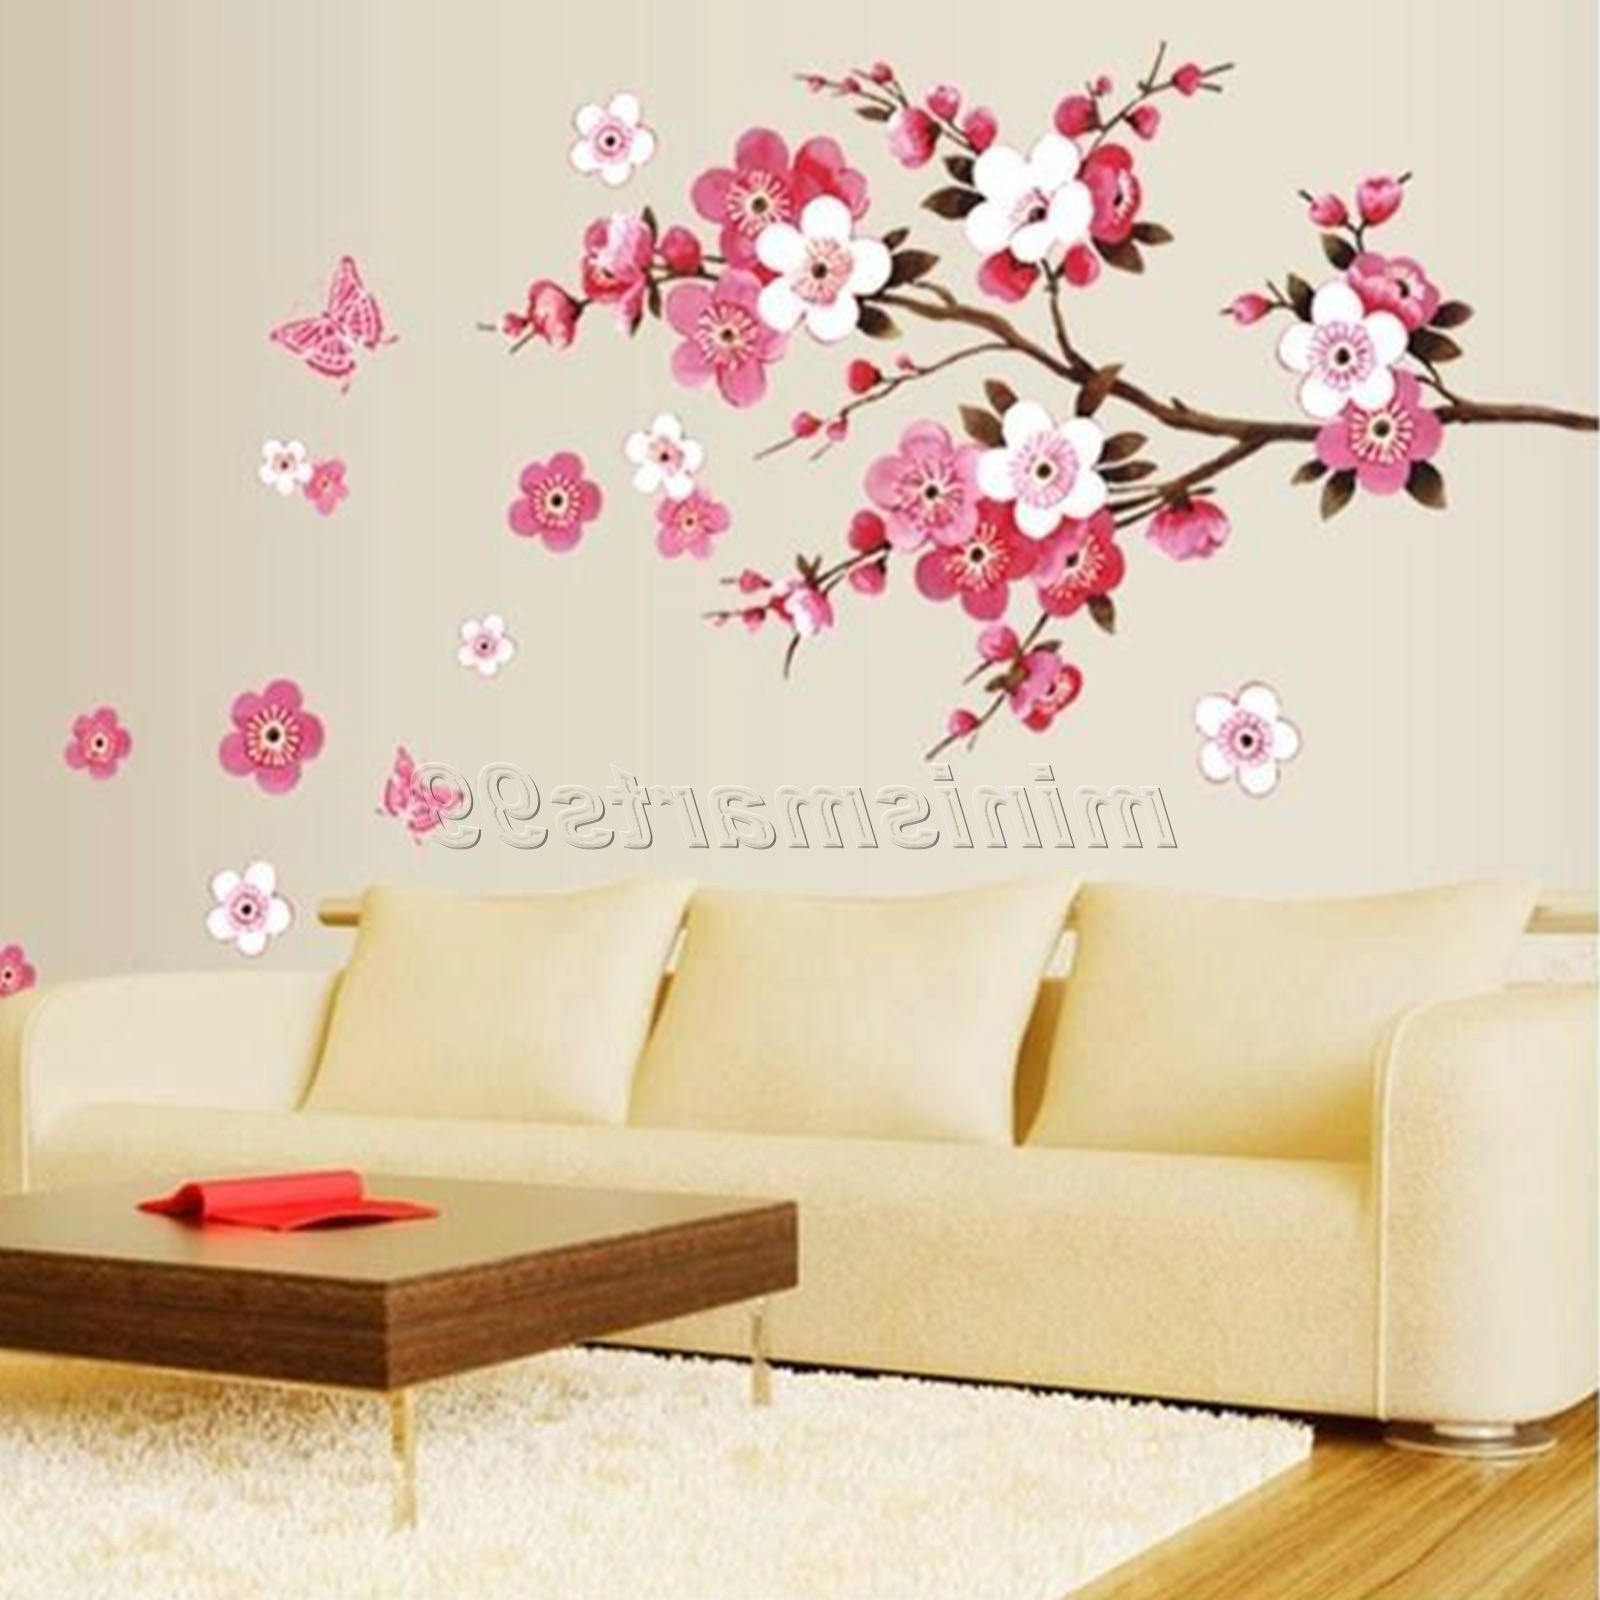 Sakura Flower Butterfly Cherry Blossom Wall Decal Nursery Tree With Most Current Cherry Blossom Wall Art (View 12 of 15)